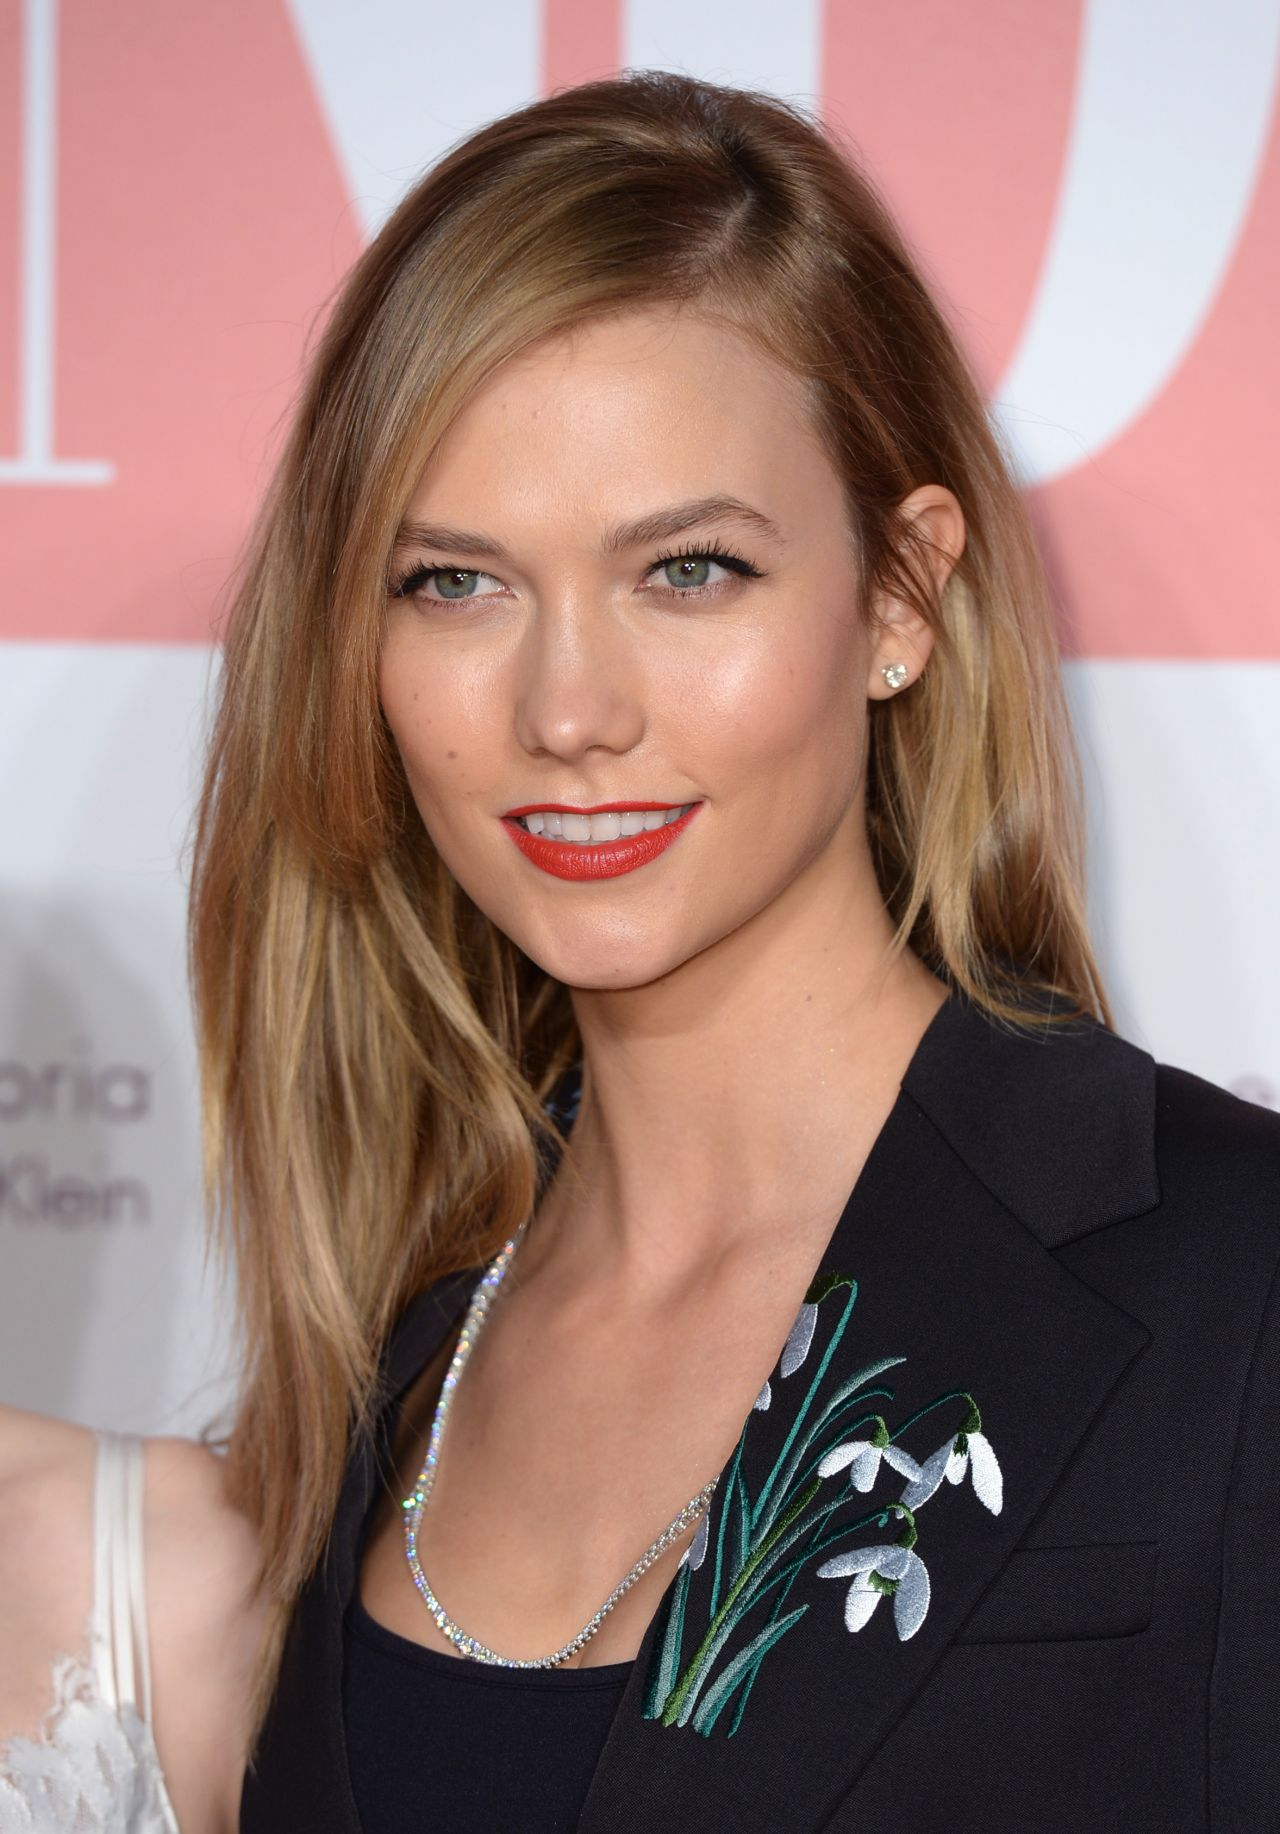 karlie-kloss-the-naked-heart-foundation-fabulous-fund-fair-fashion-party-in-london-january-2016-8